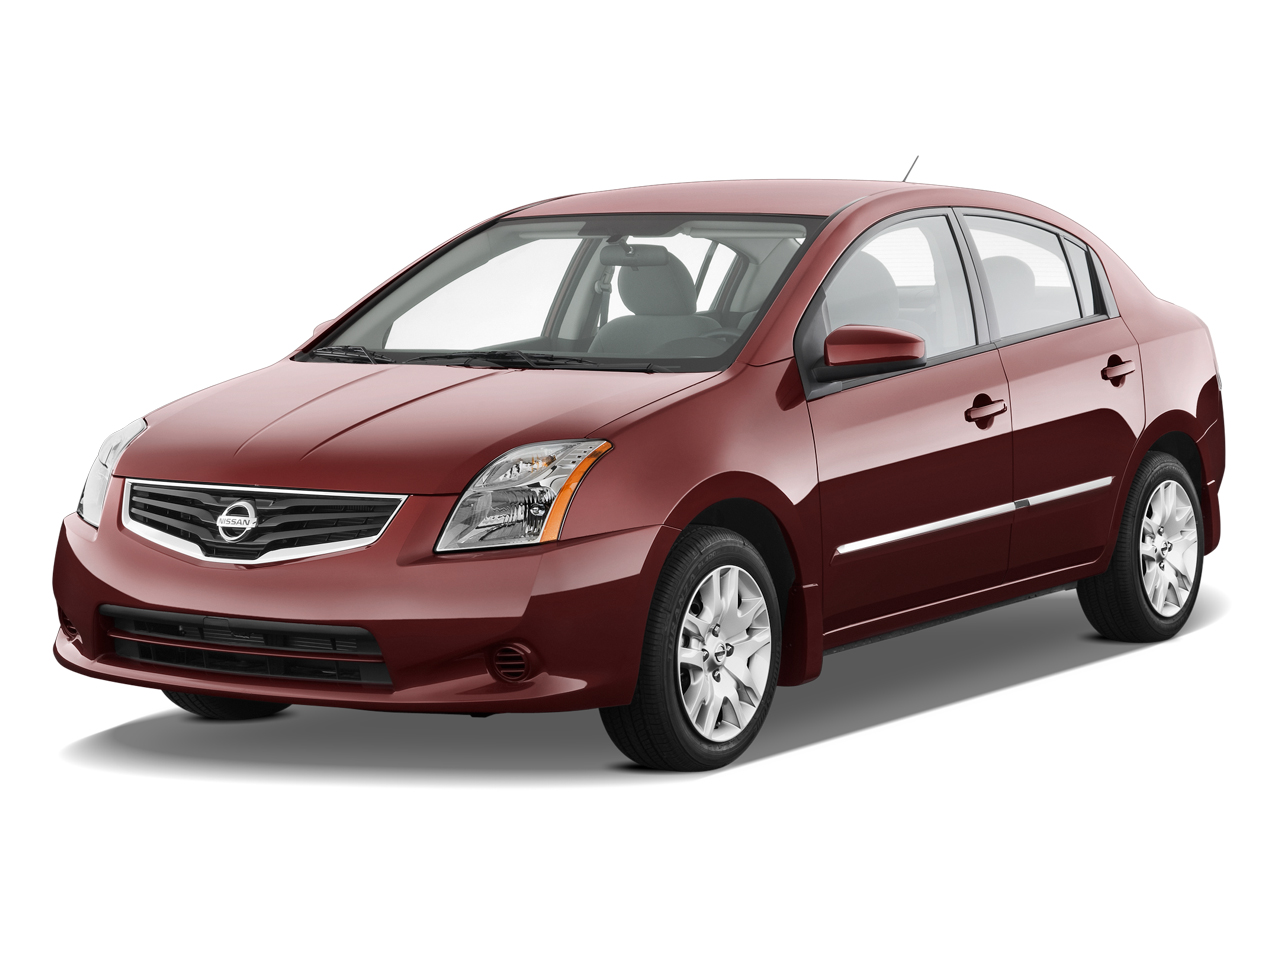 2011 Nissan Sentra Gas Mileage - The Car Connection